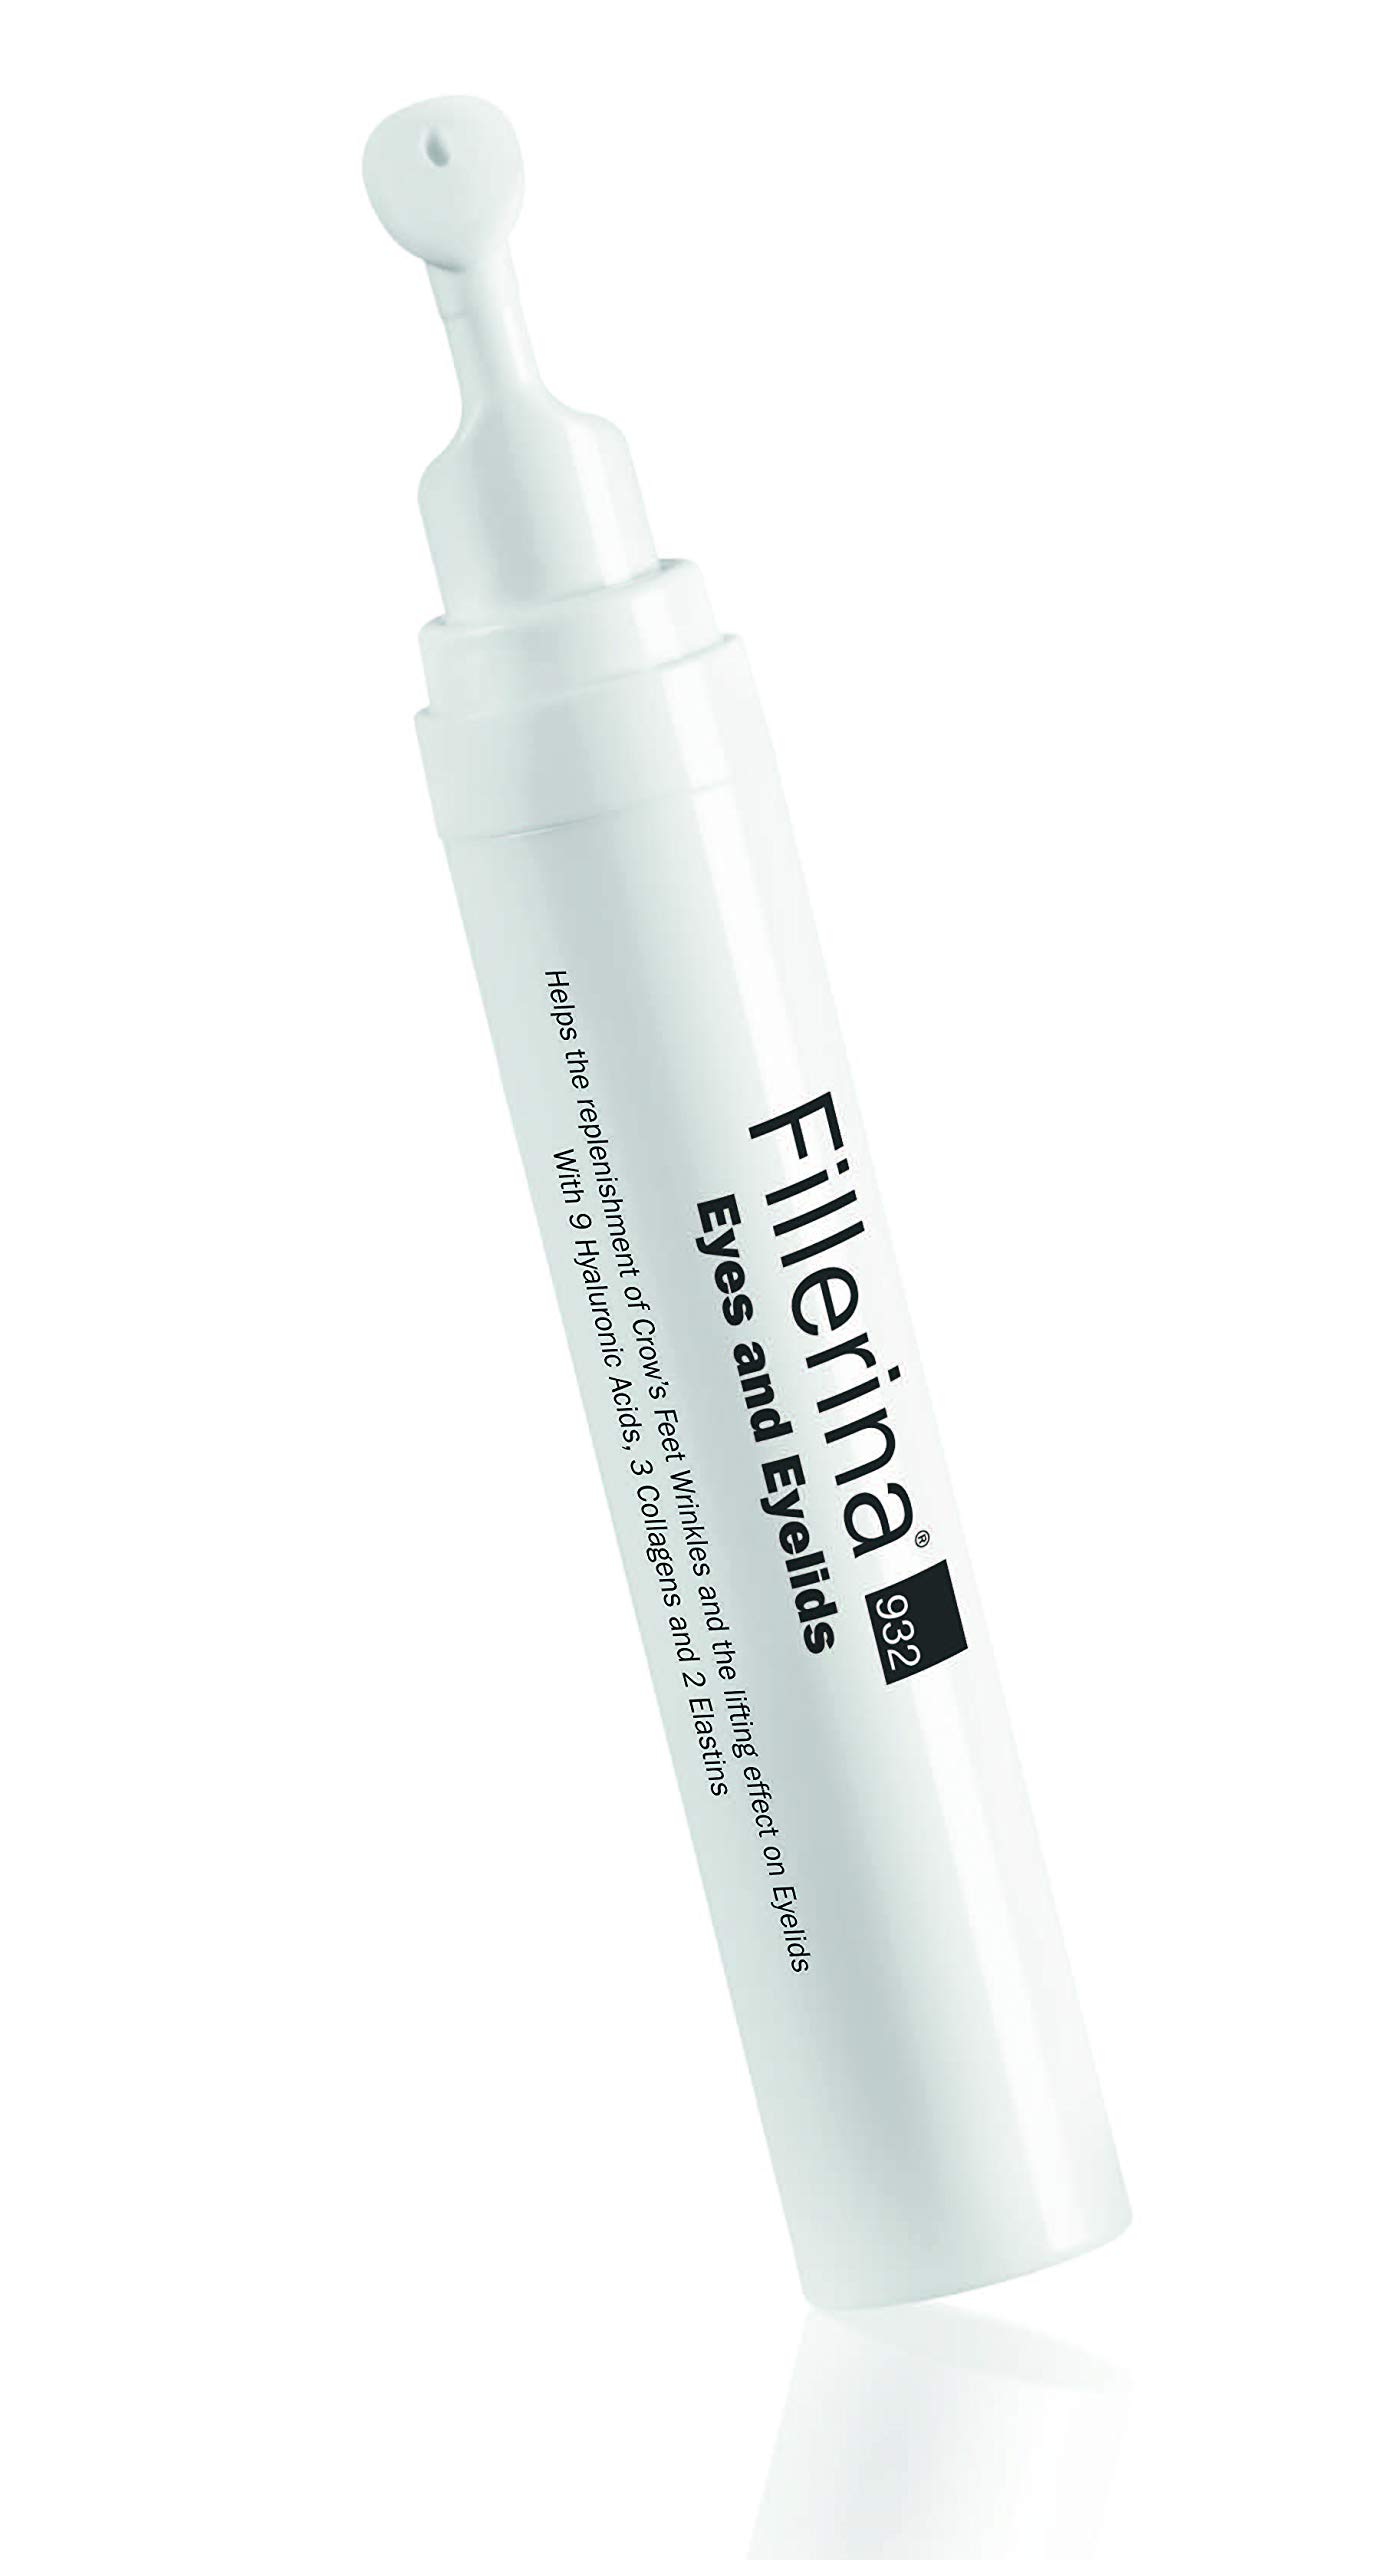 Fillerina 932 Eyes and Eyelids - Eye Treatment That Fills In Under Eye Hollowness, Smooths Crows Feet, and Tightens Eyelids - Hyaluronic Acid and Collagen Eye Treatment (Grade 5) by Fillerina